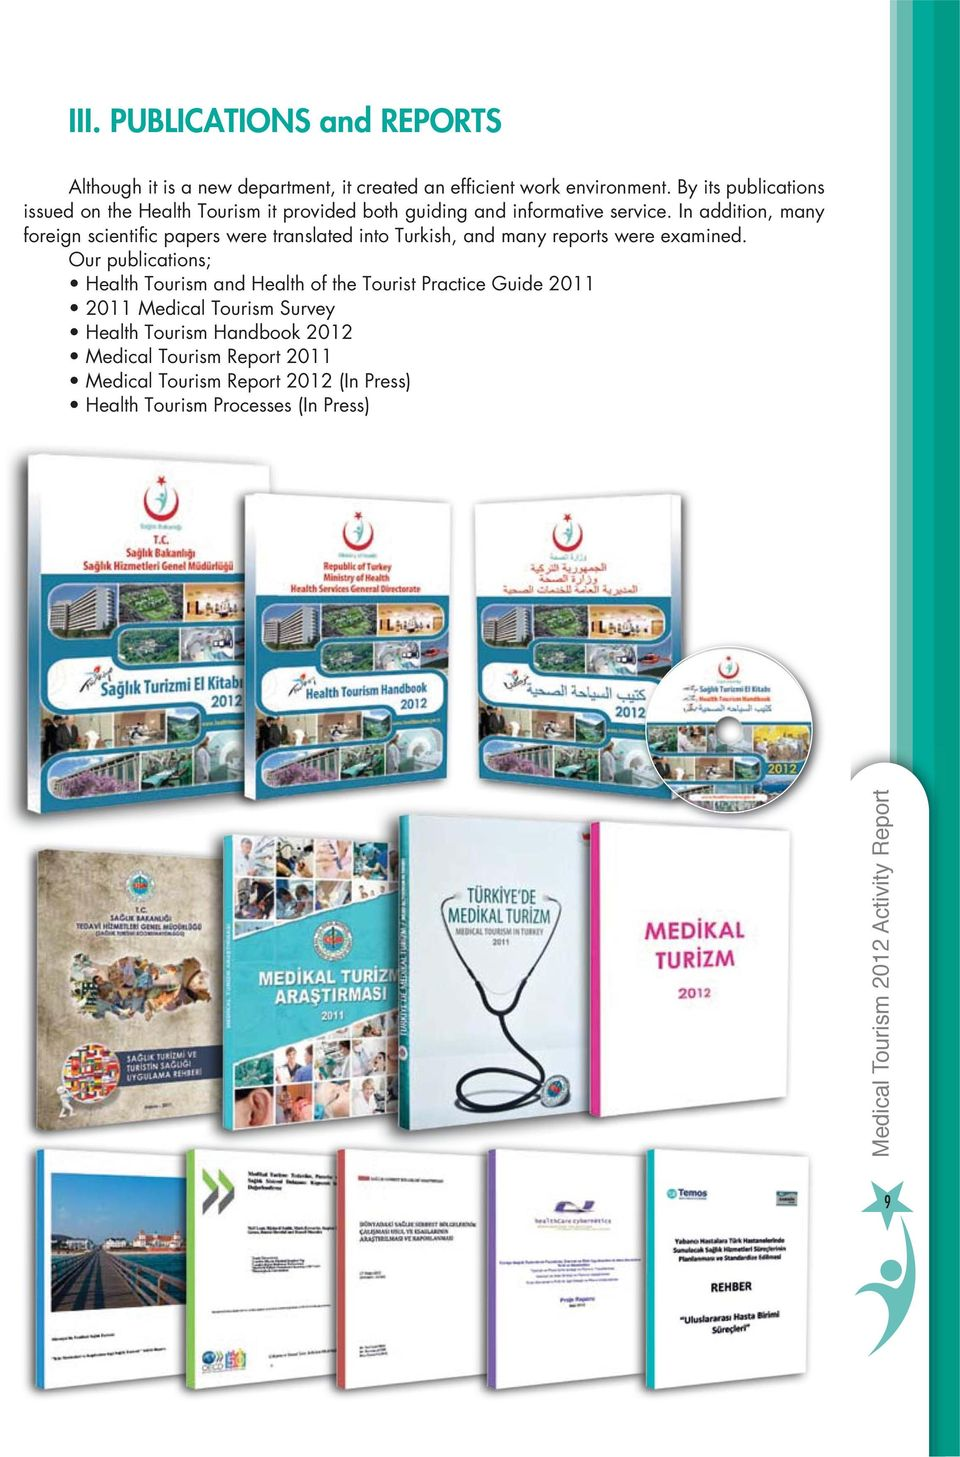 By its publications issued on the Health Tourism it provided both guiding and informative service.